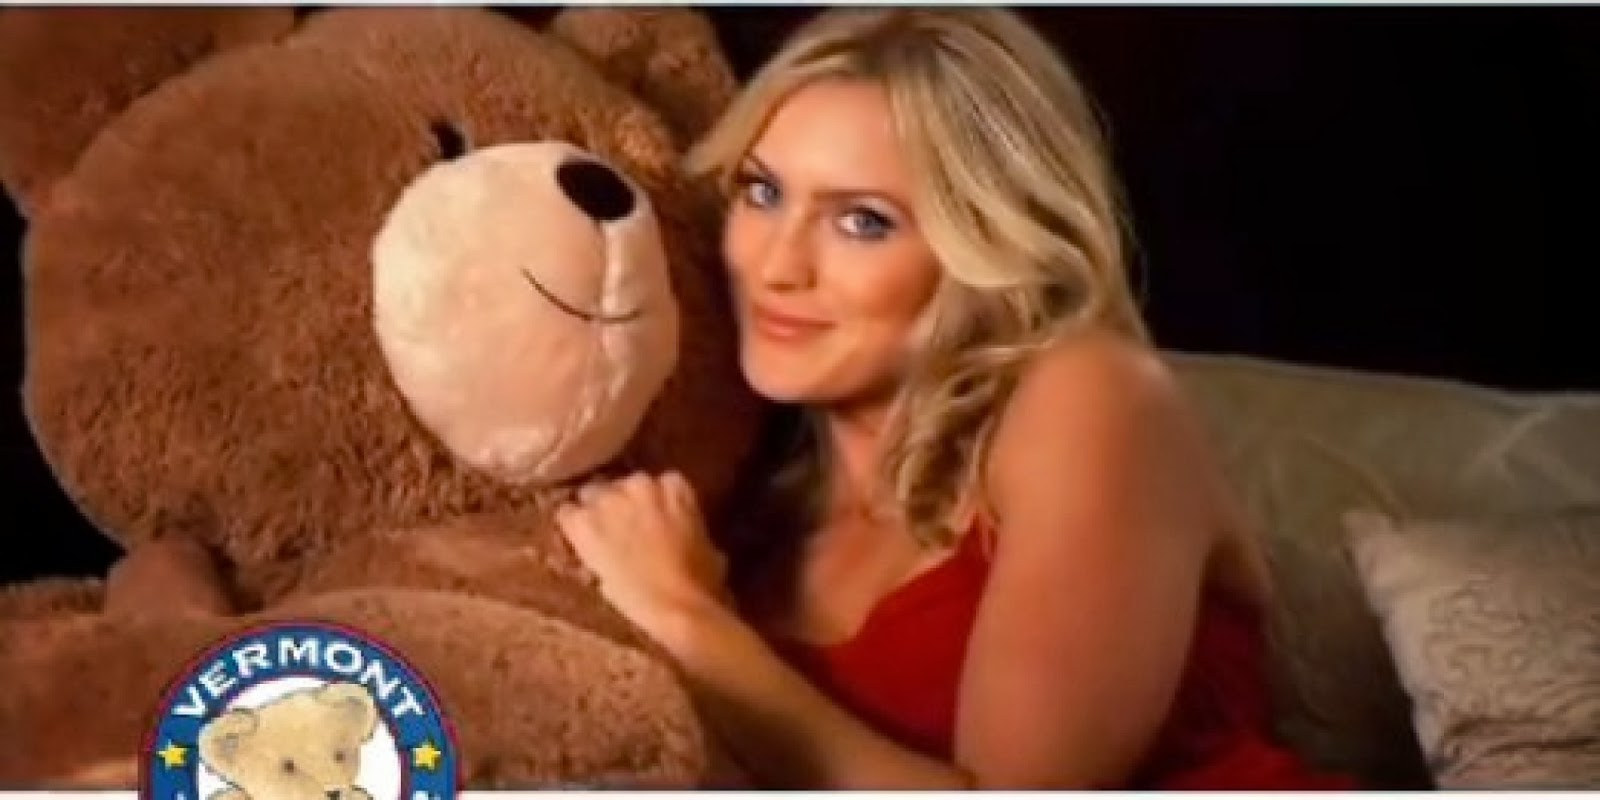 Just Women having sex with a teddy bear